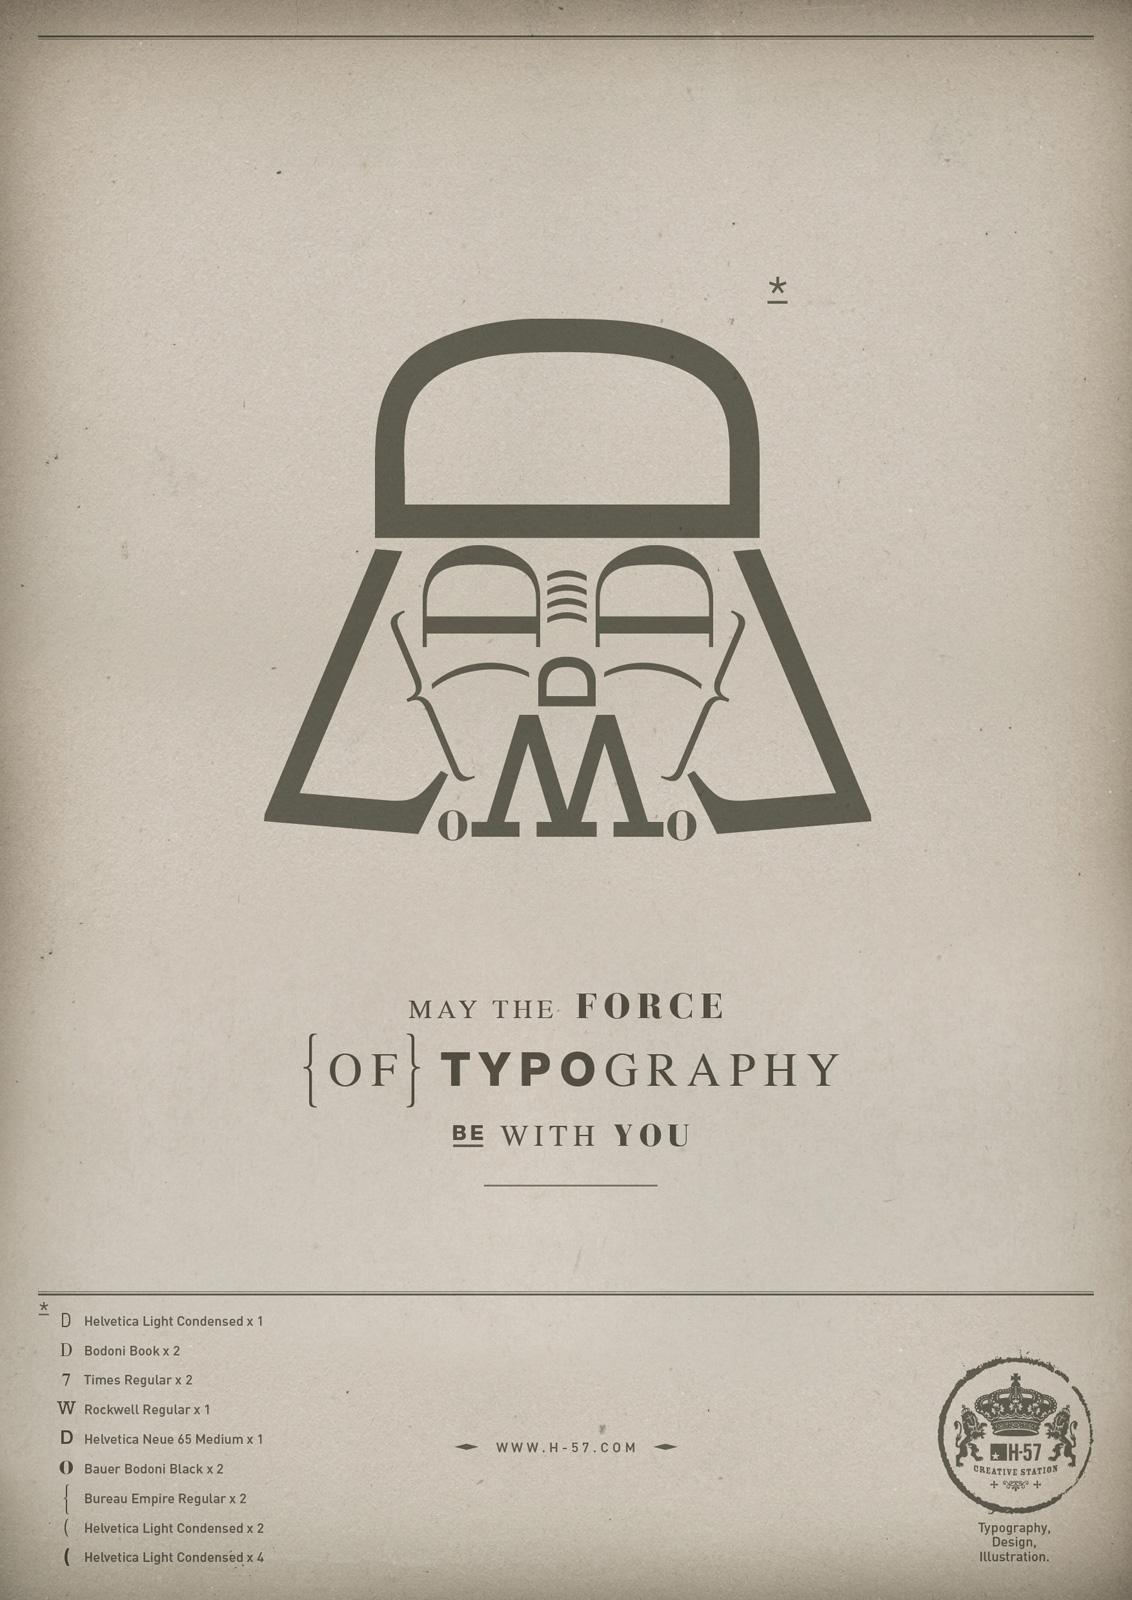 H-57 Print Ad -  The Force of Typography, Darth Vader